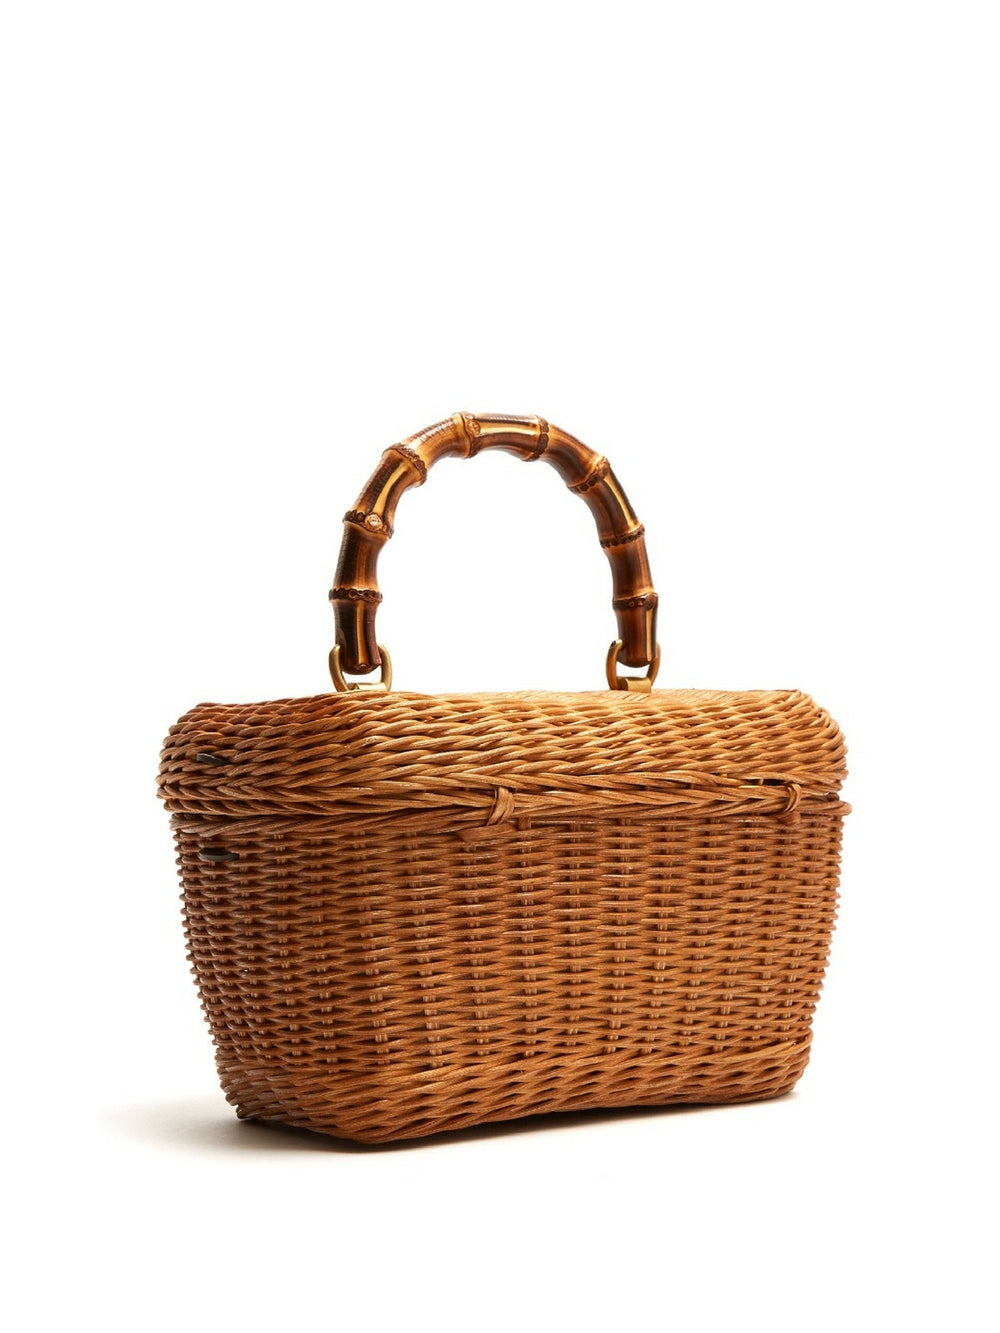 gucci-cestino-bamboo-handle-wicker-basket-bag